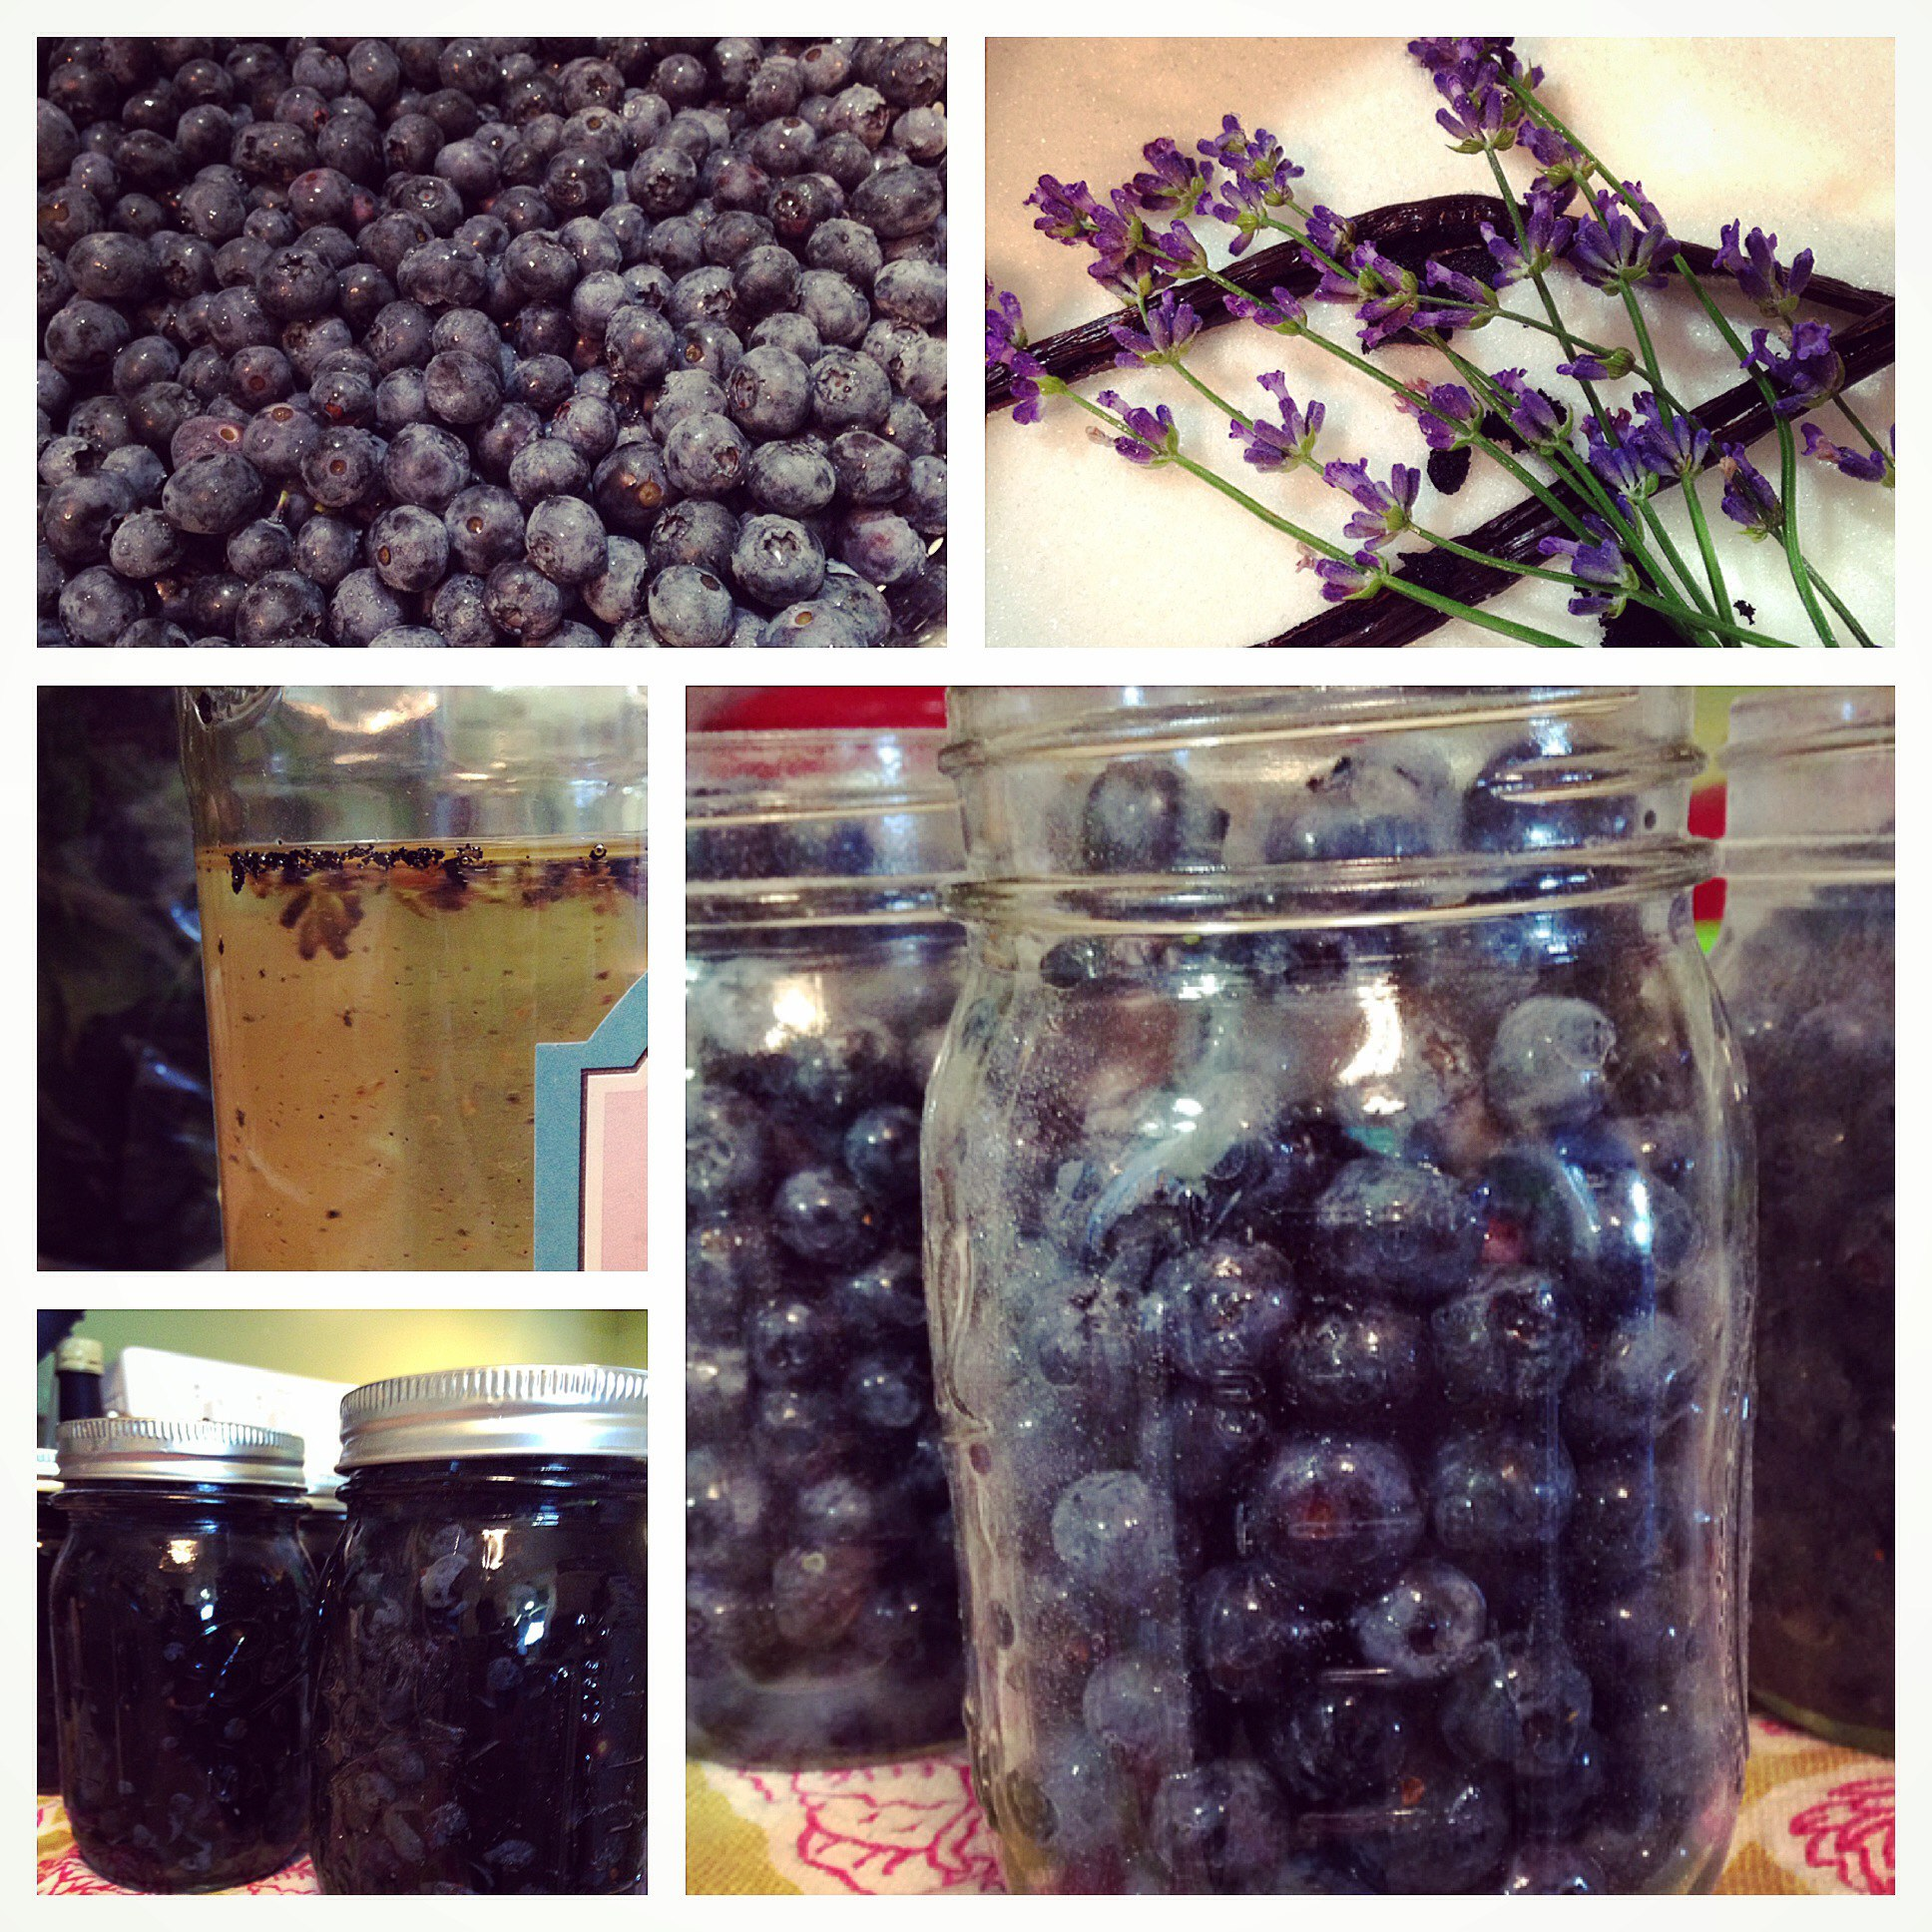 Whole Blueberries in Lavender and Vanilla Bean Syrup